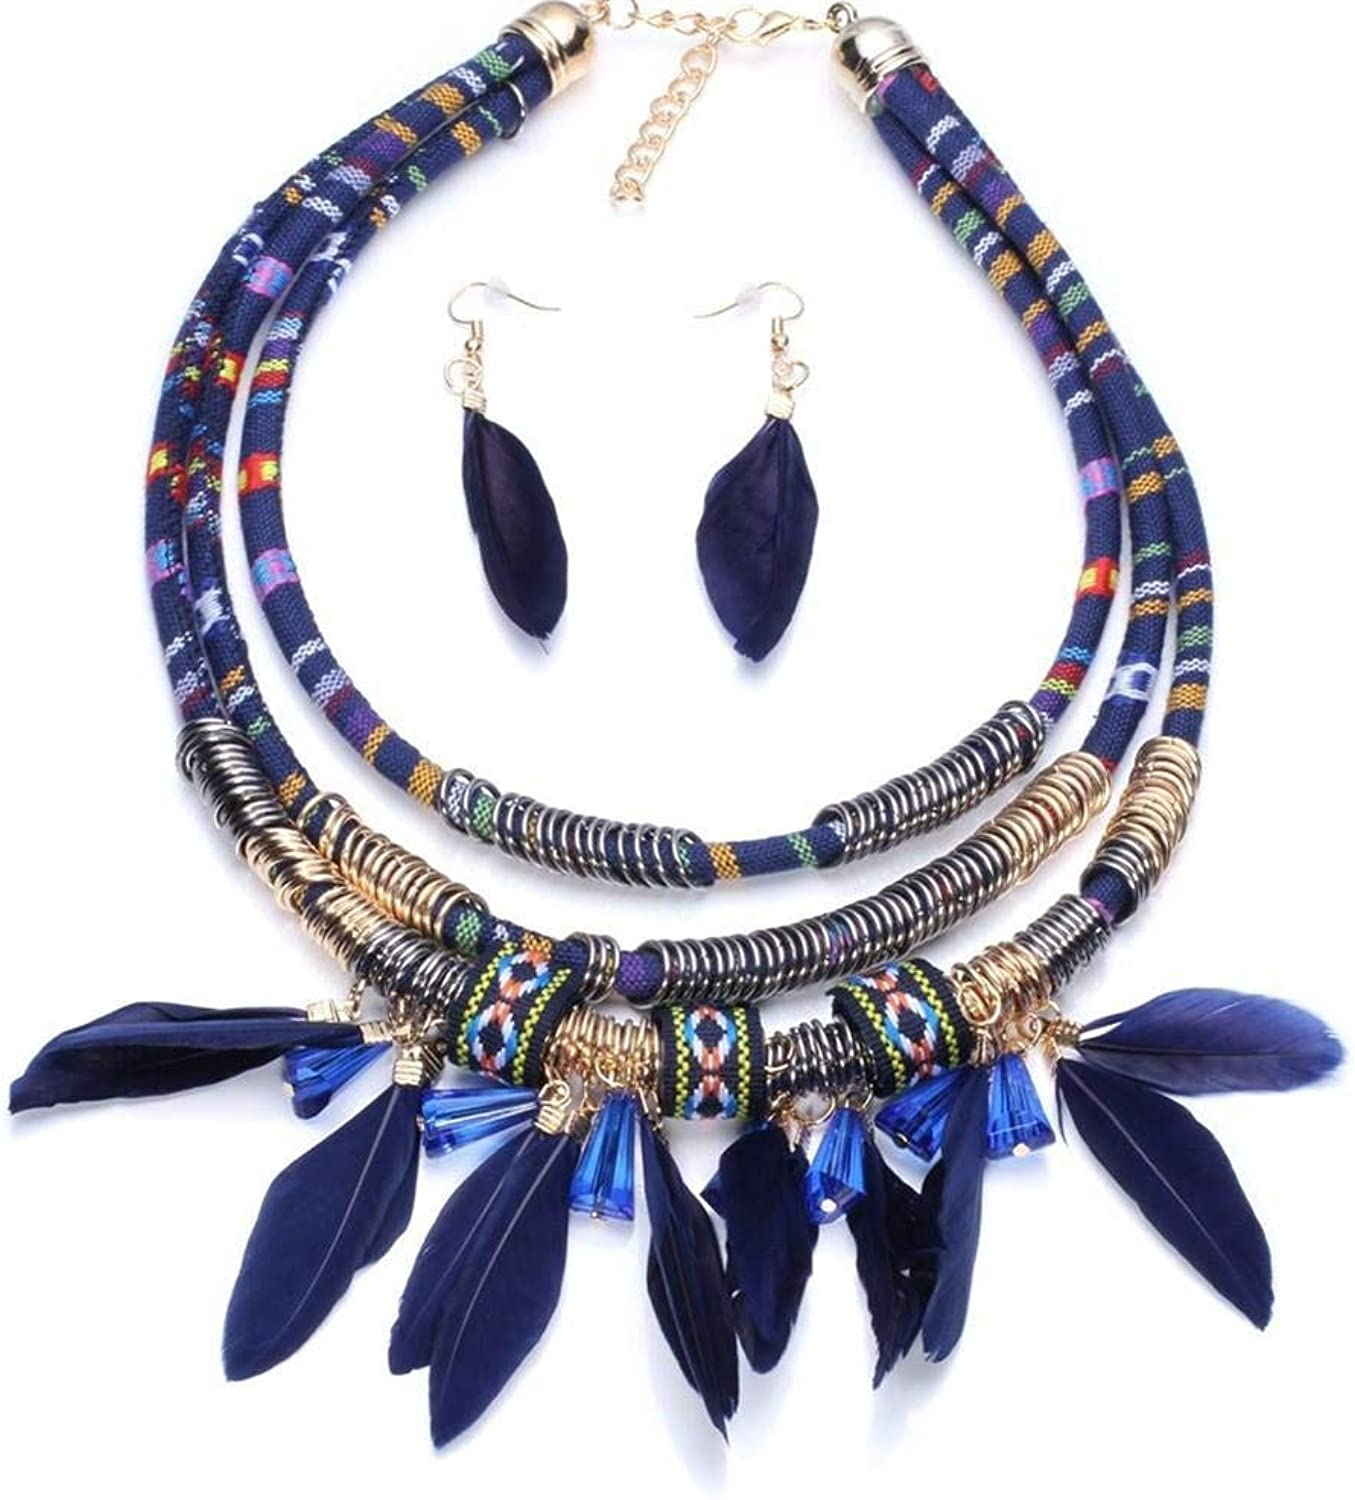 Rhinestone Necklace Choker Exaggerated Fashion Feather Necklace Earrings Set by Enking